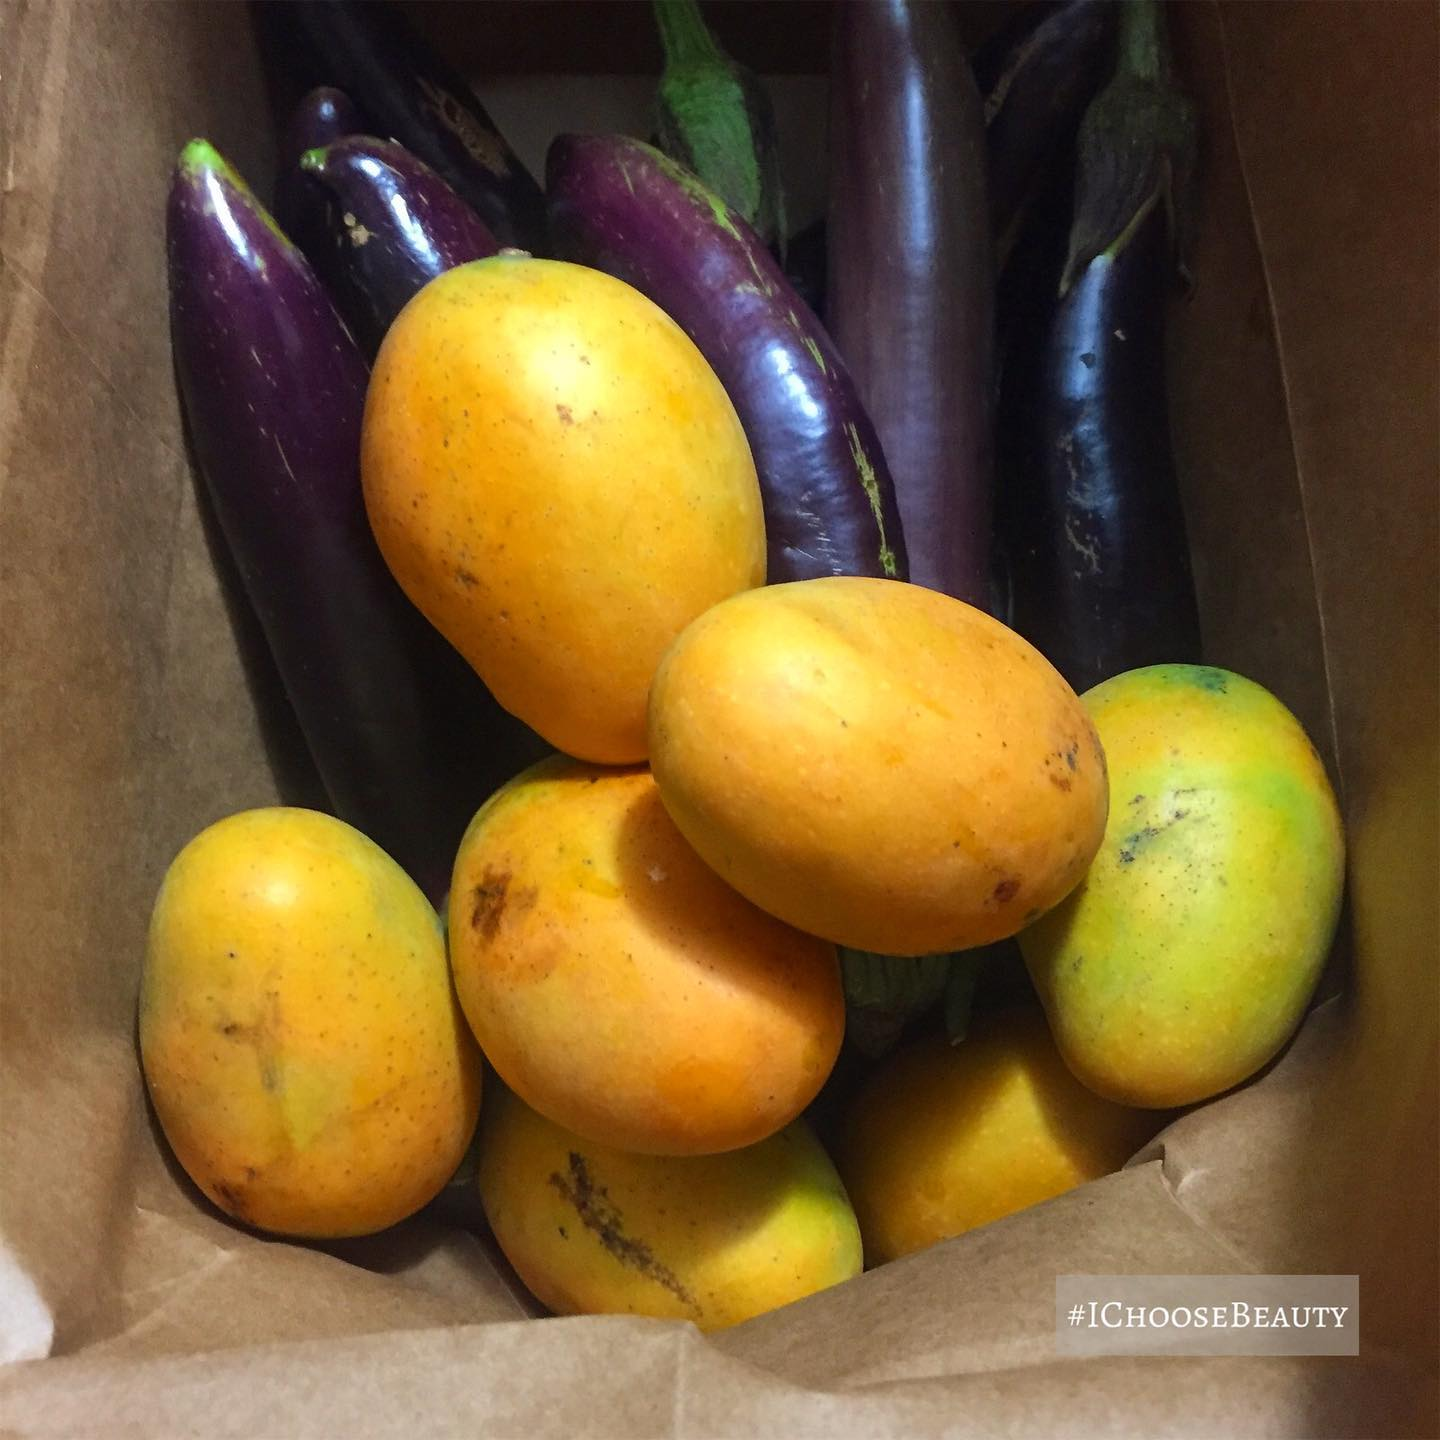 When your neighbor drops off a bag of freshly picked mangoes and eggplant.  #ichoosebeauty Day 2785